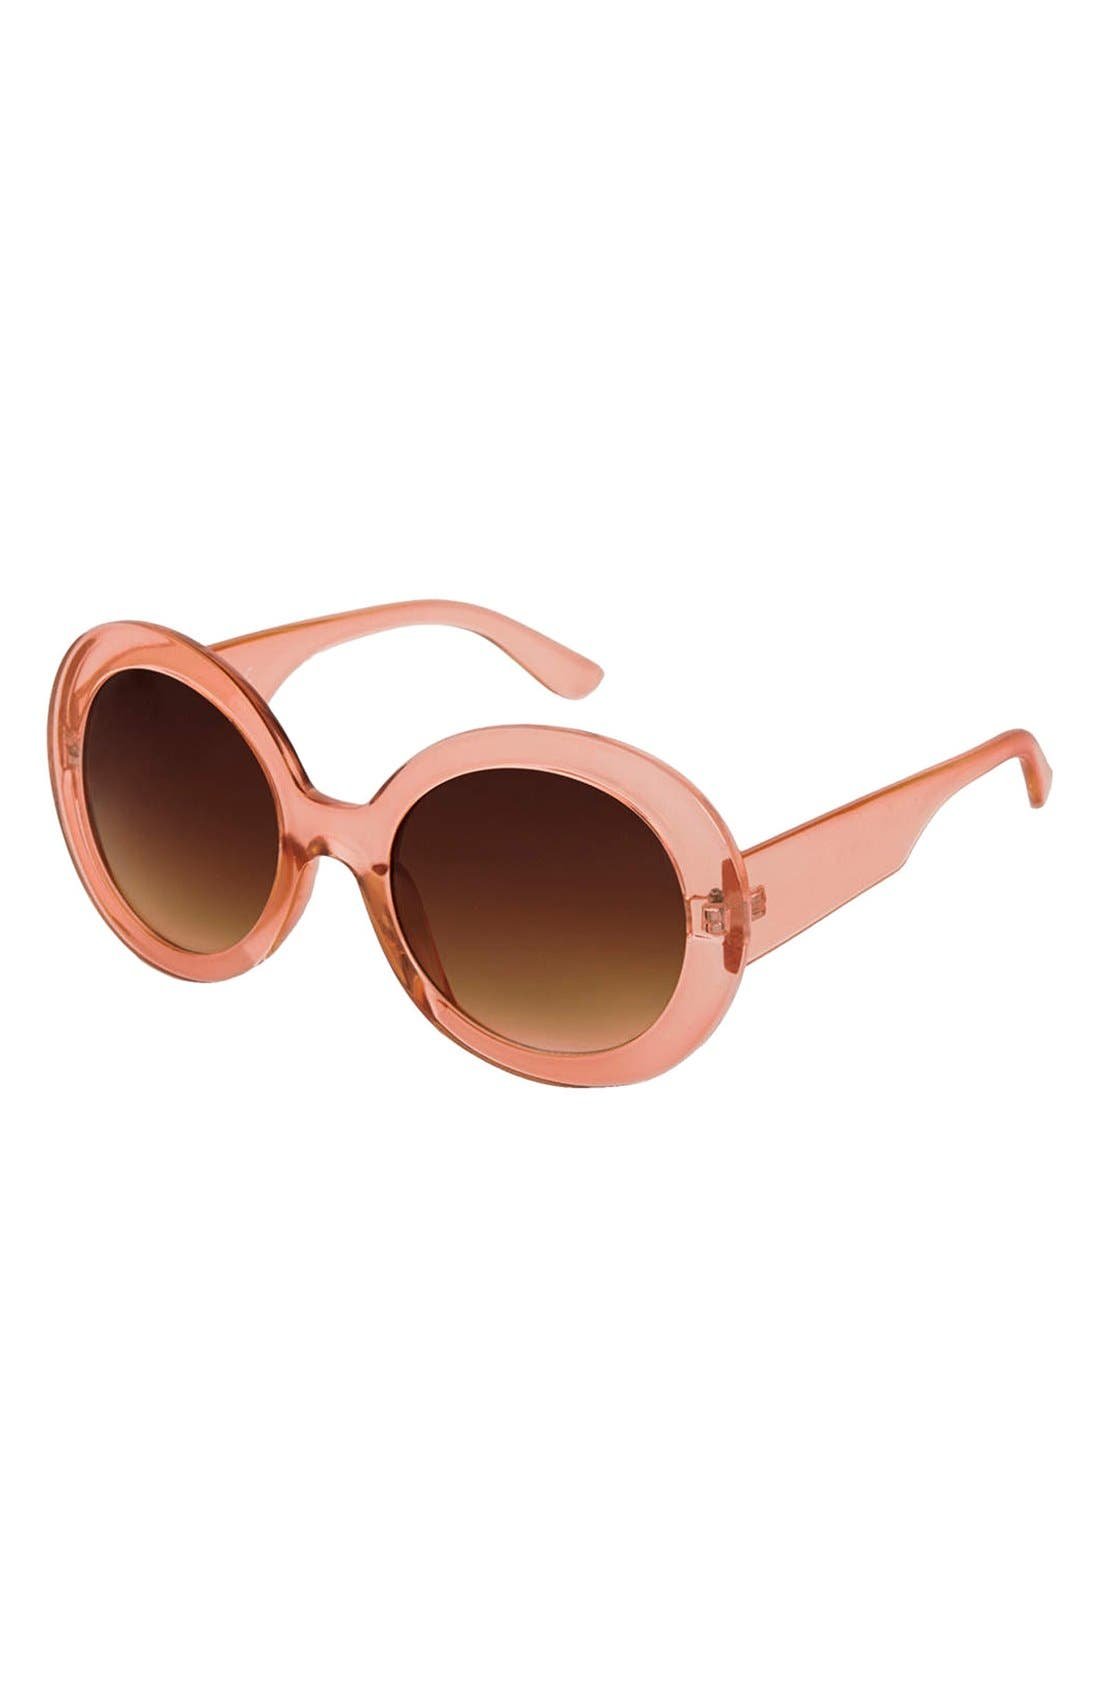 Main Image - Topshop 'Petra' 53mm Oversize Round Sunglasses